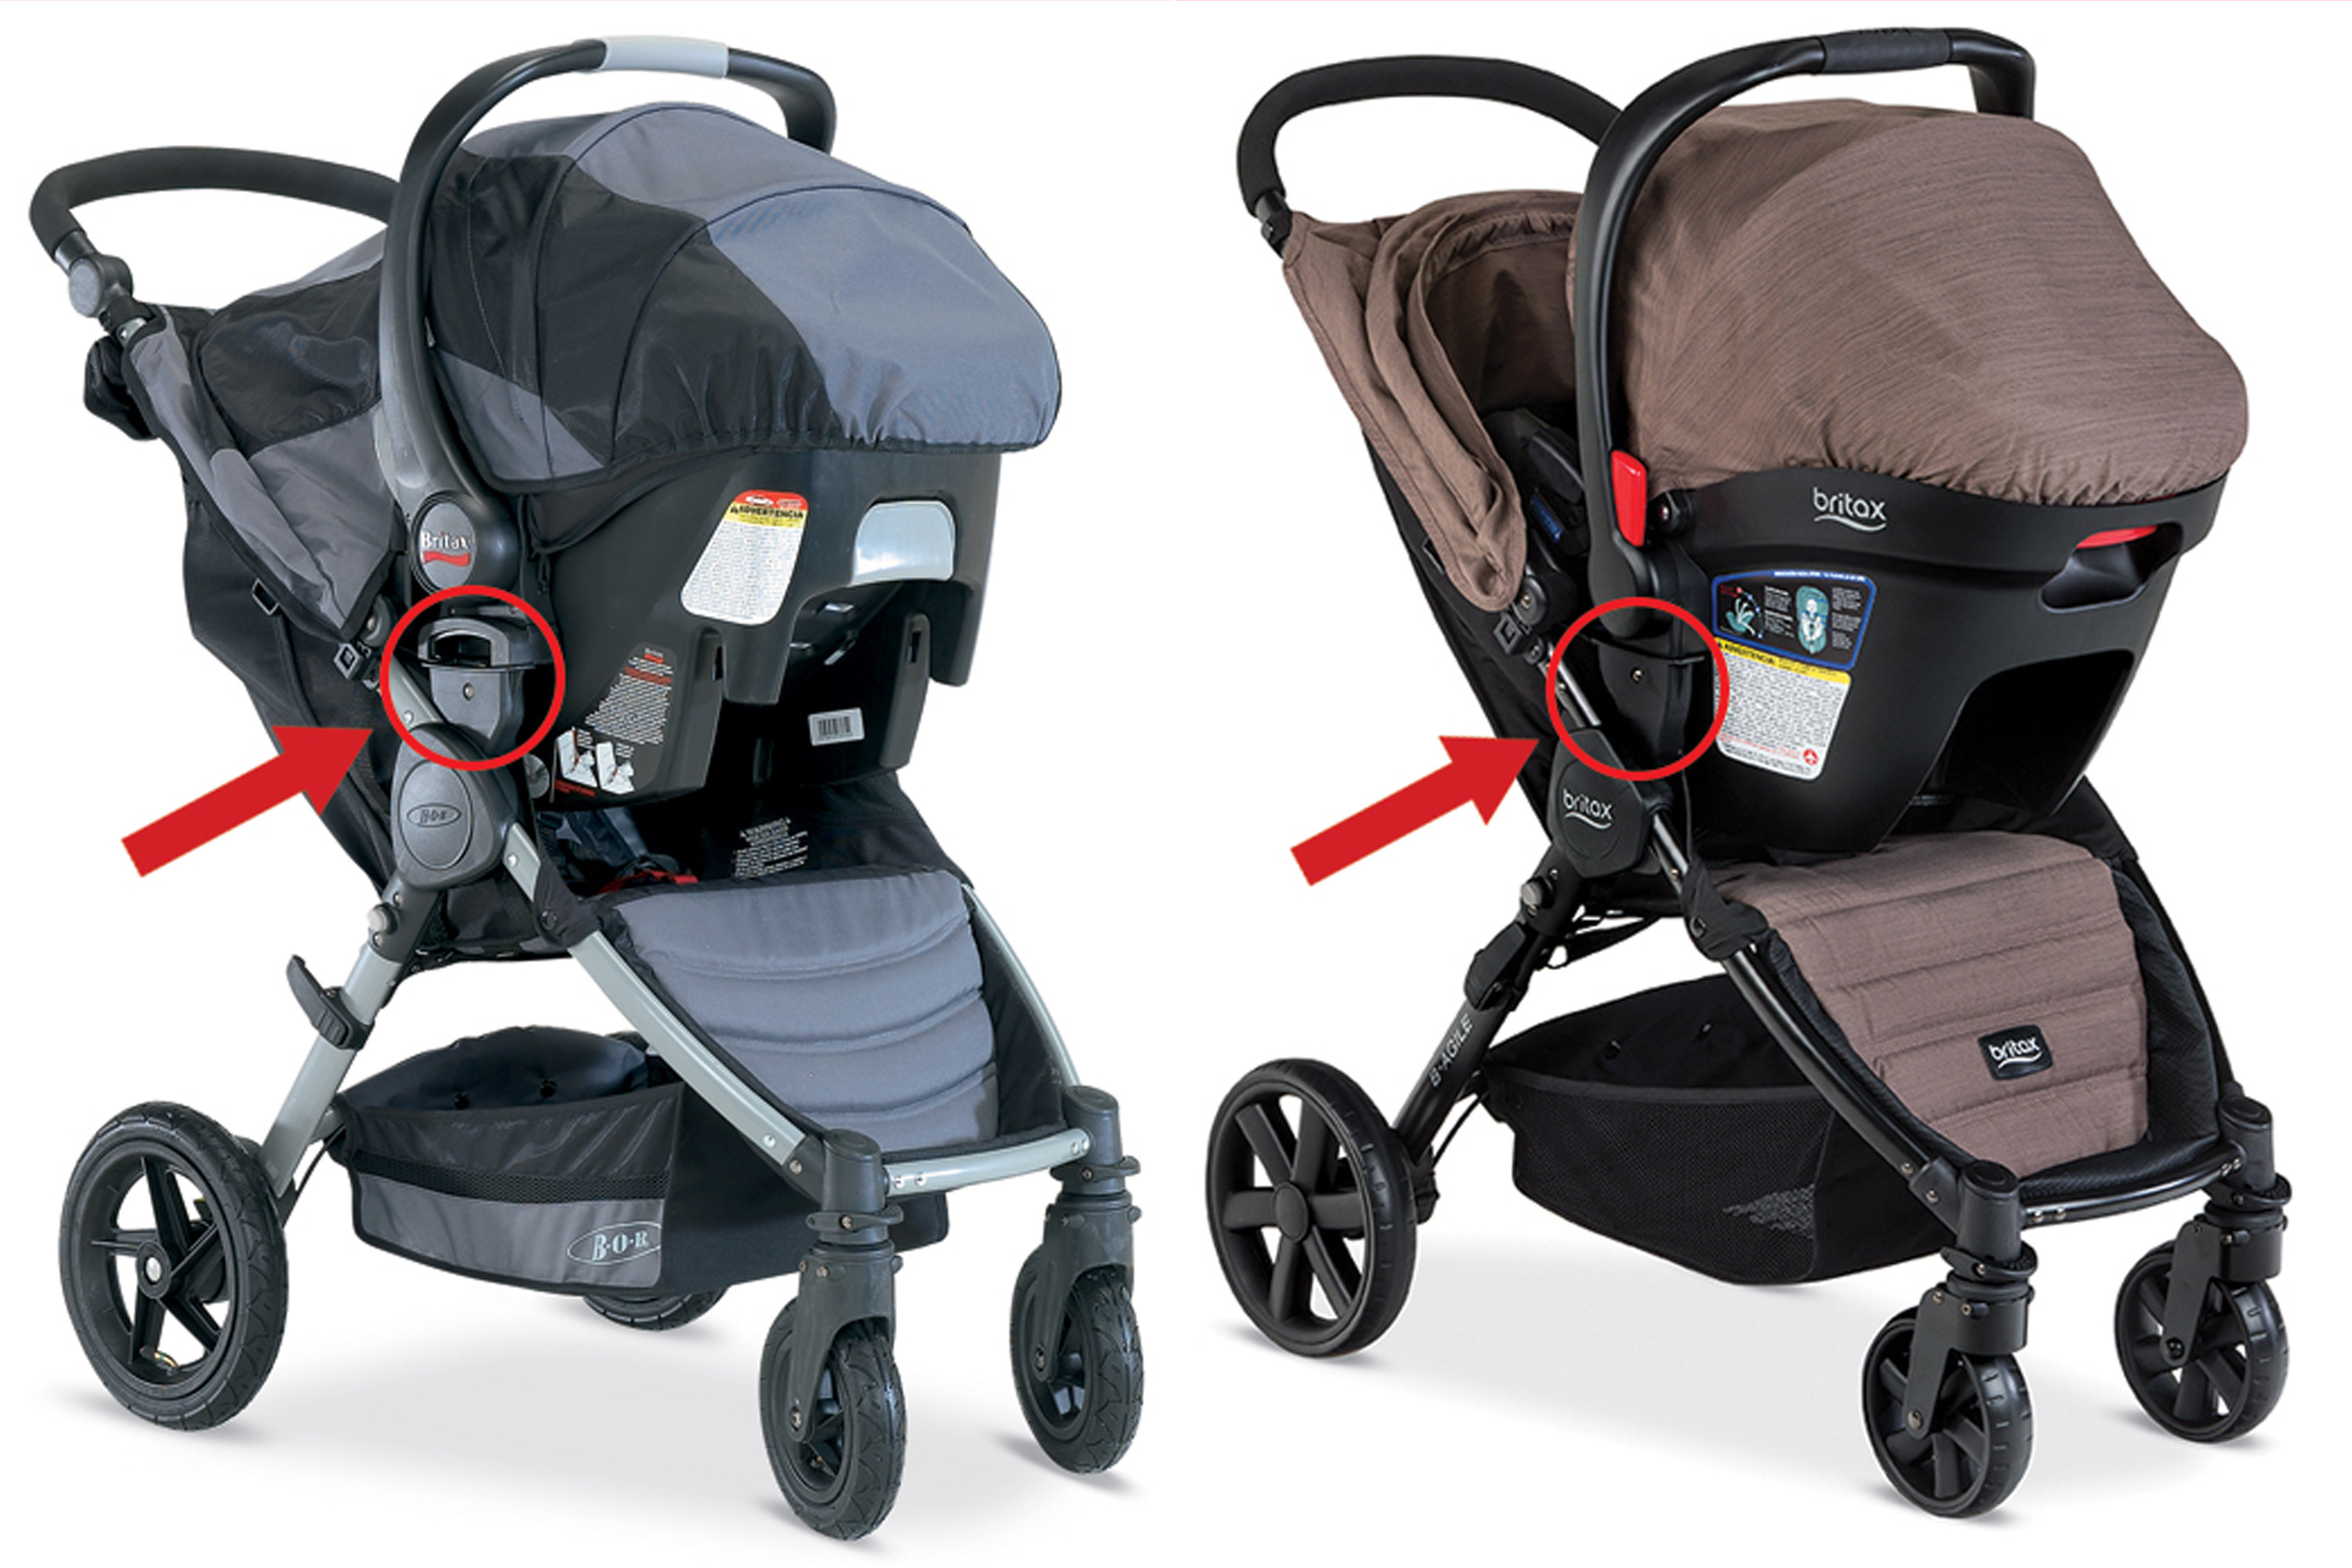 Britax Car Seat With Stroller Britax Recalls 700 000 Strollers Sold Over 6 Years After